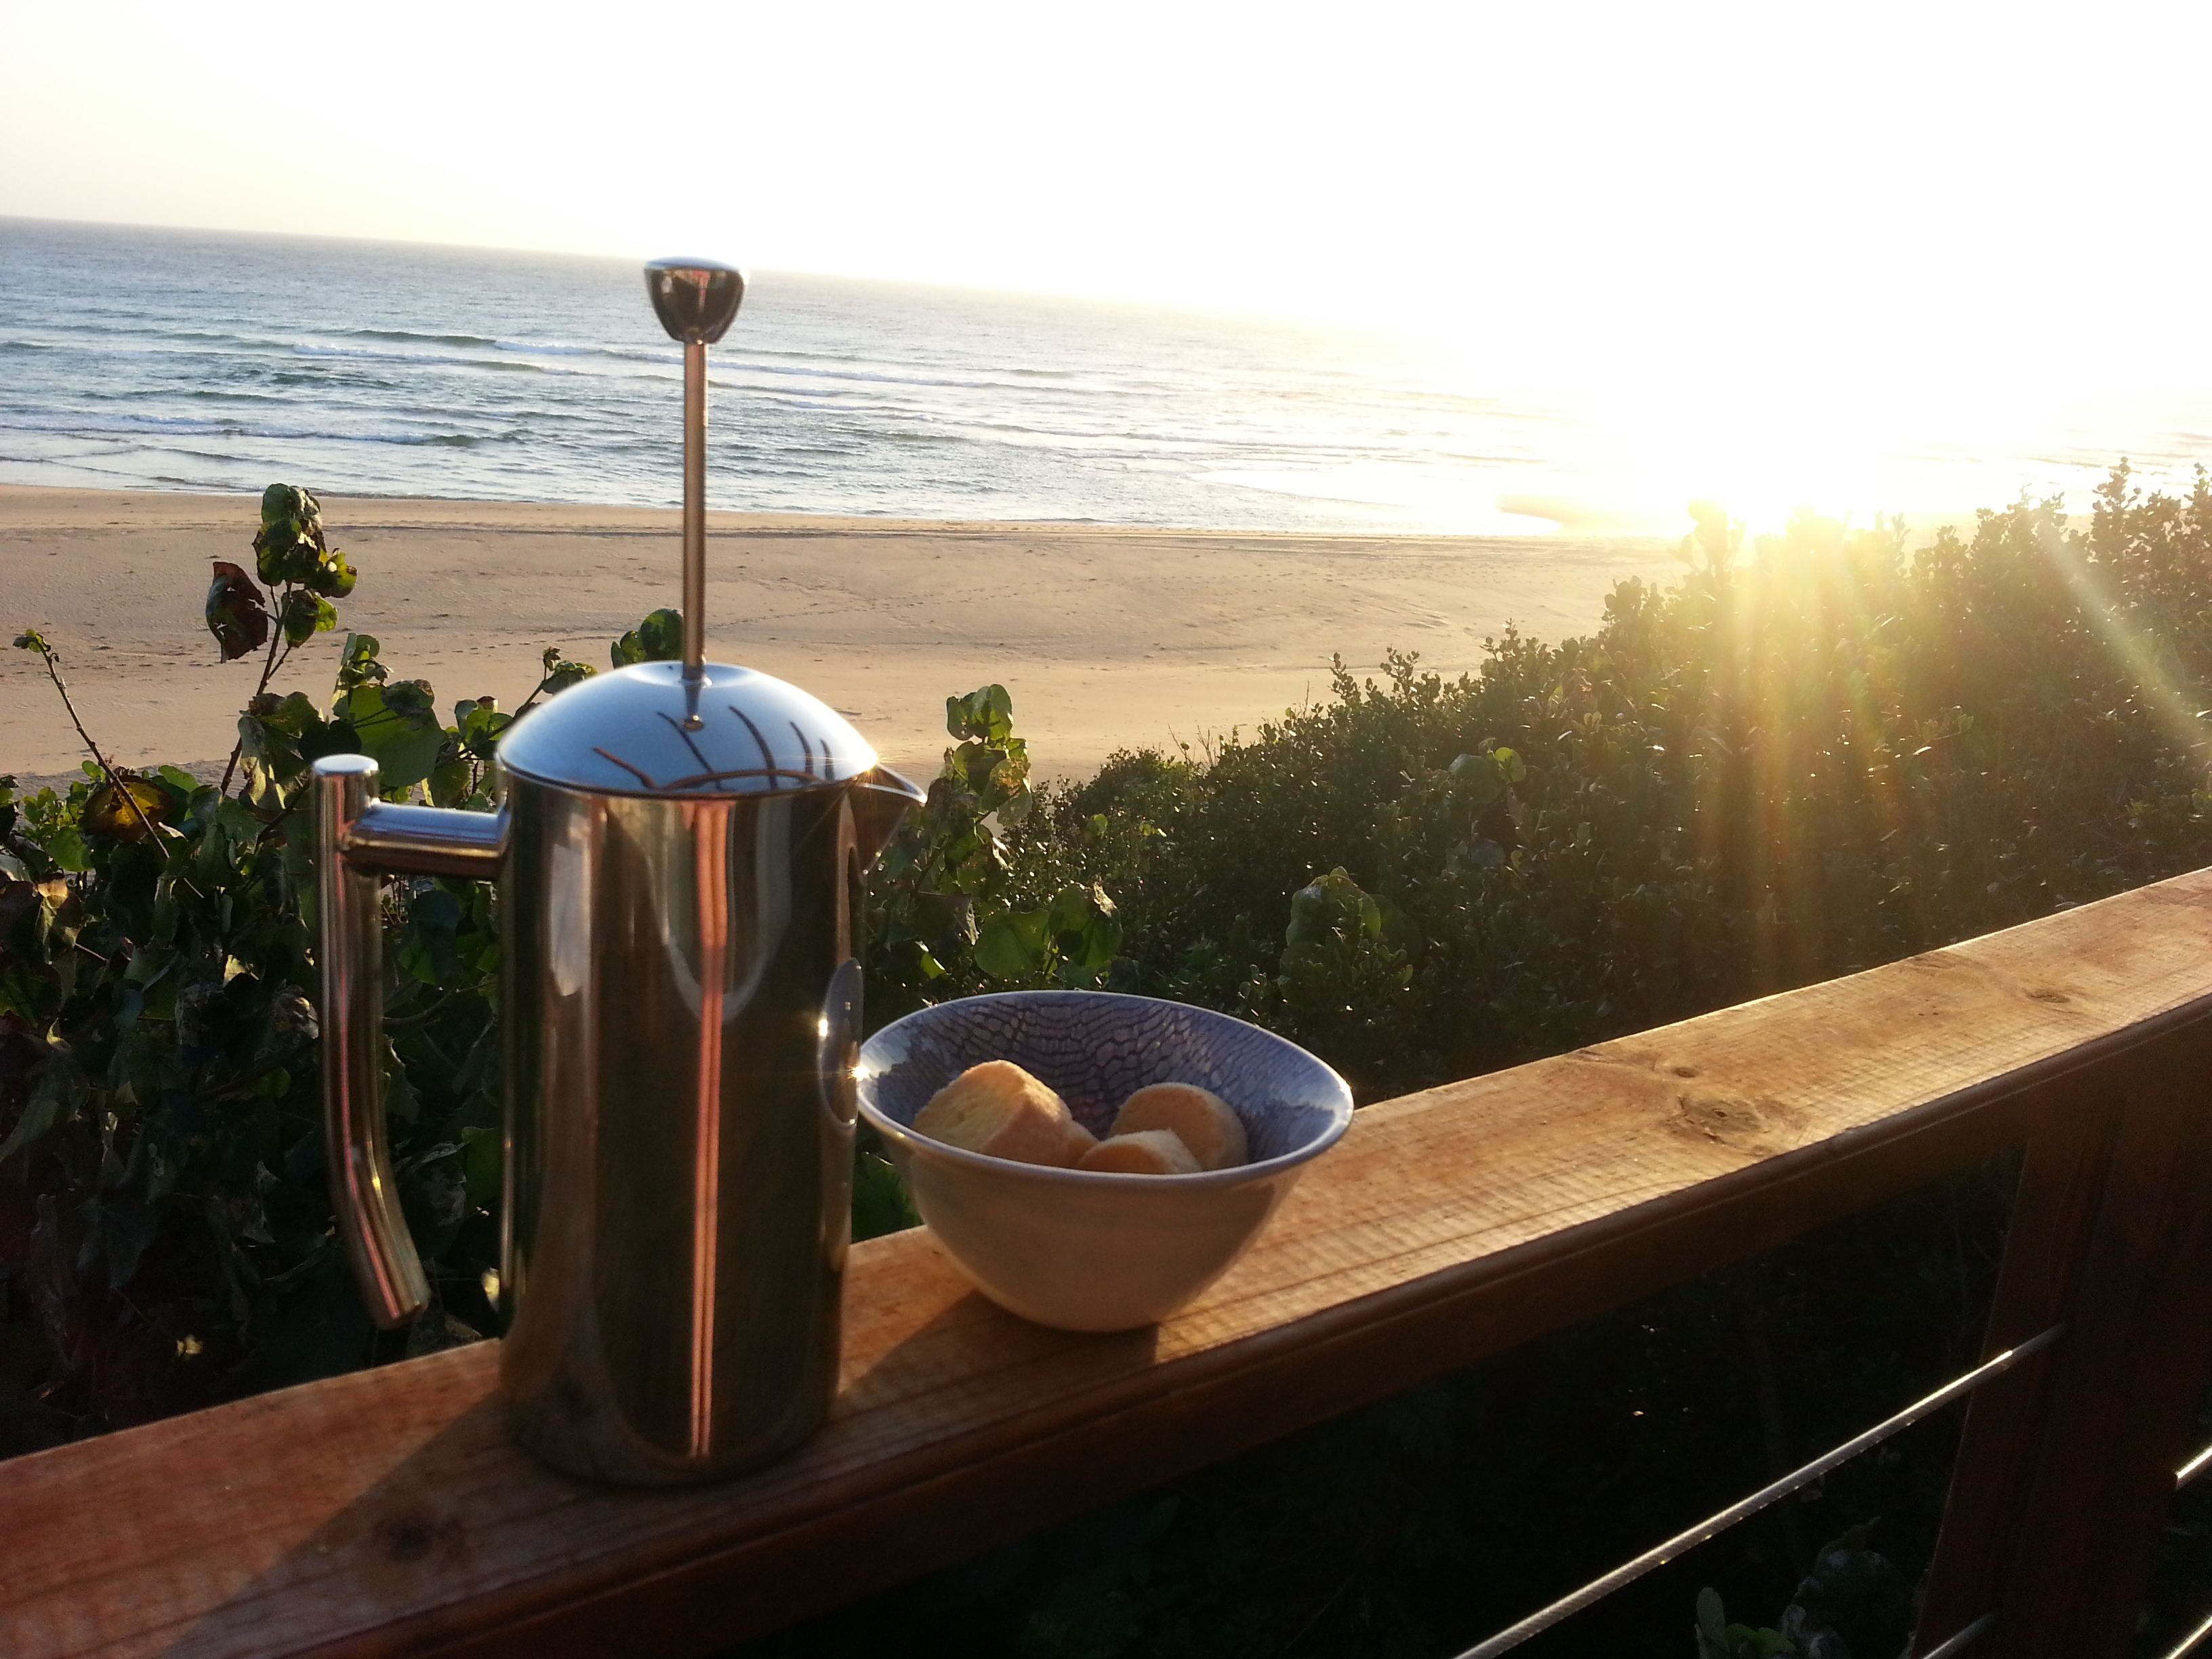 Morning coffee with a view and the best shortbread biscuits in the world.